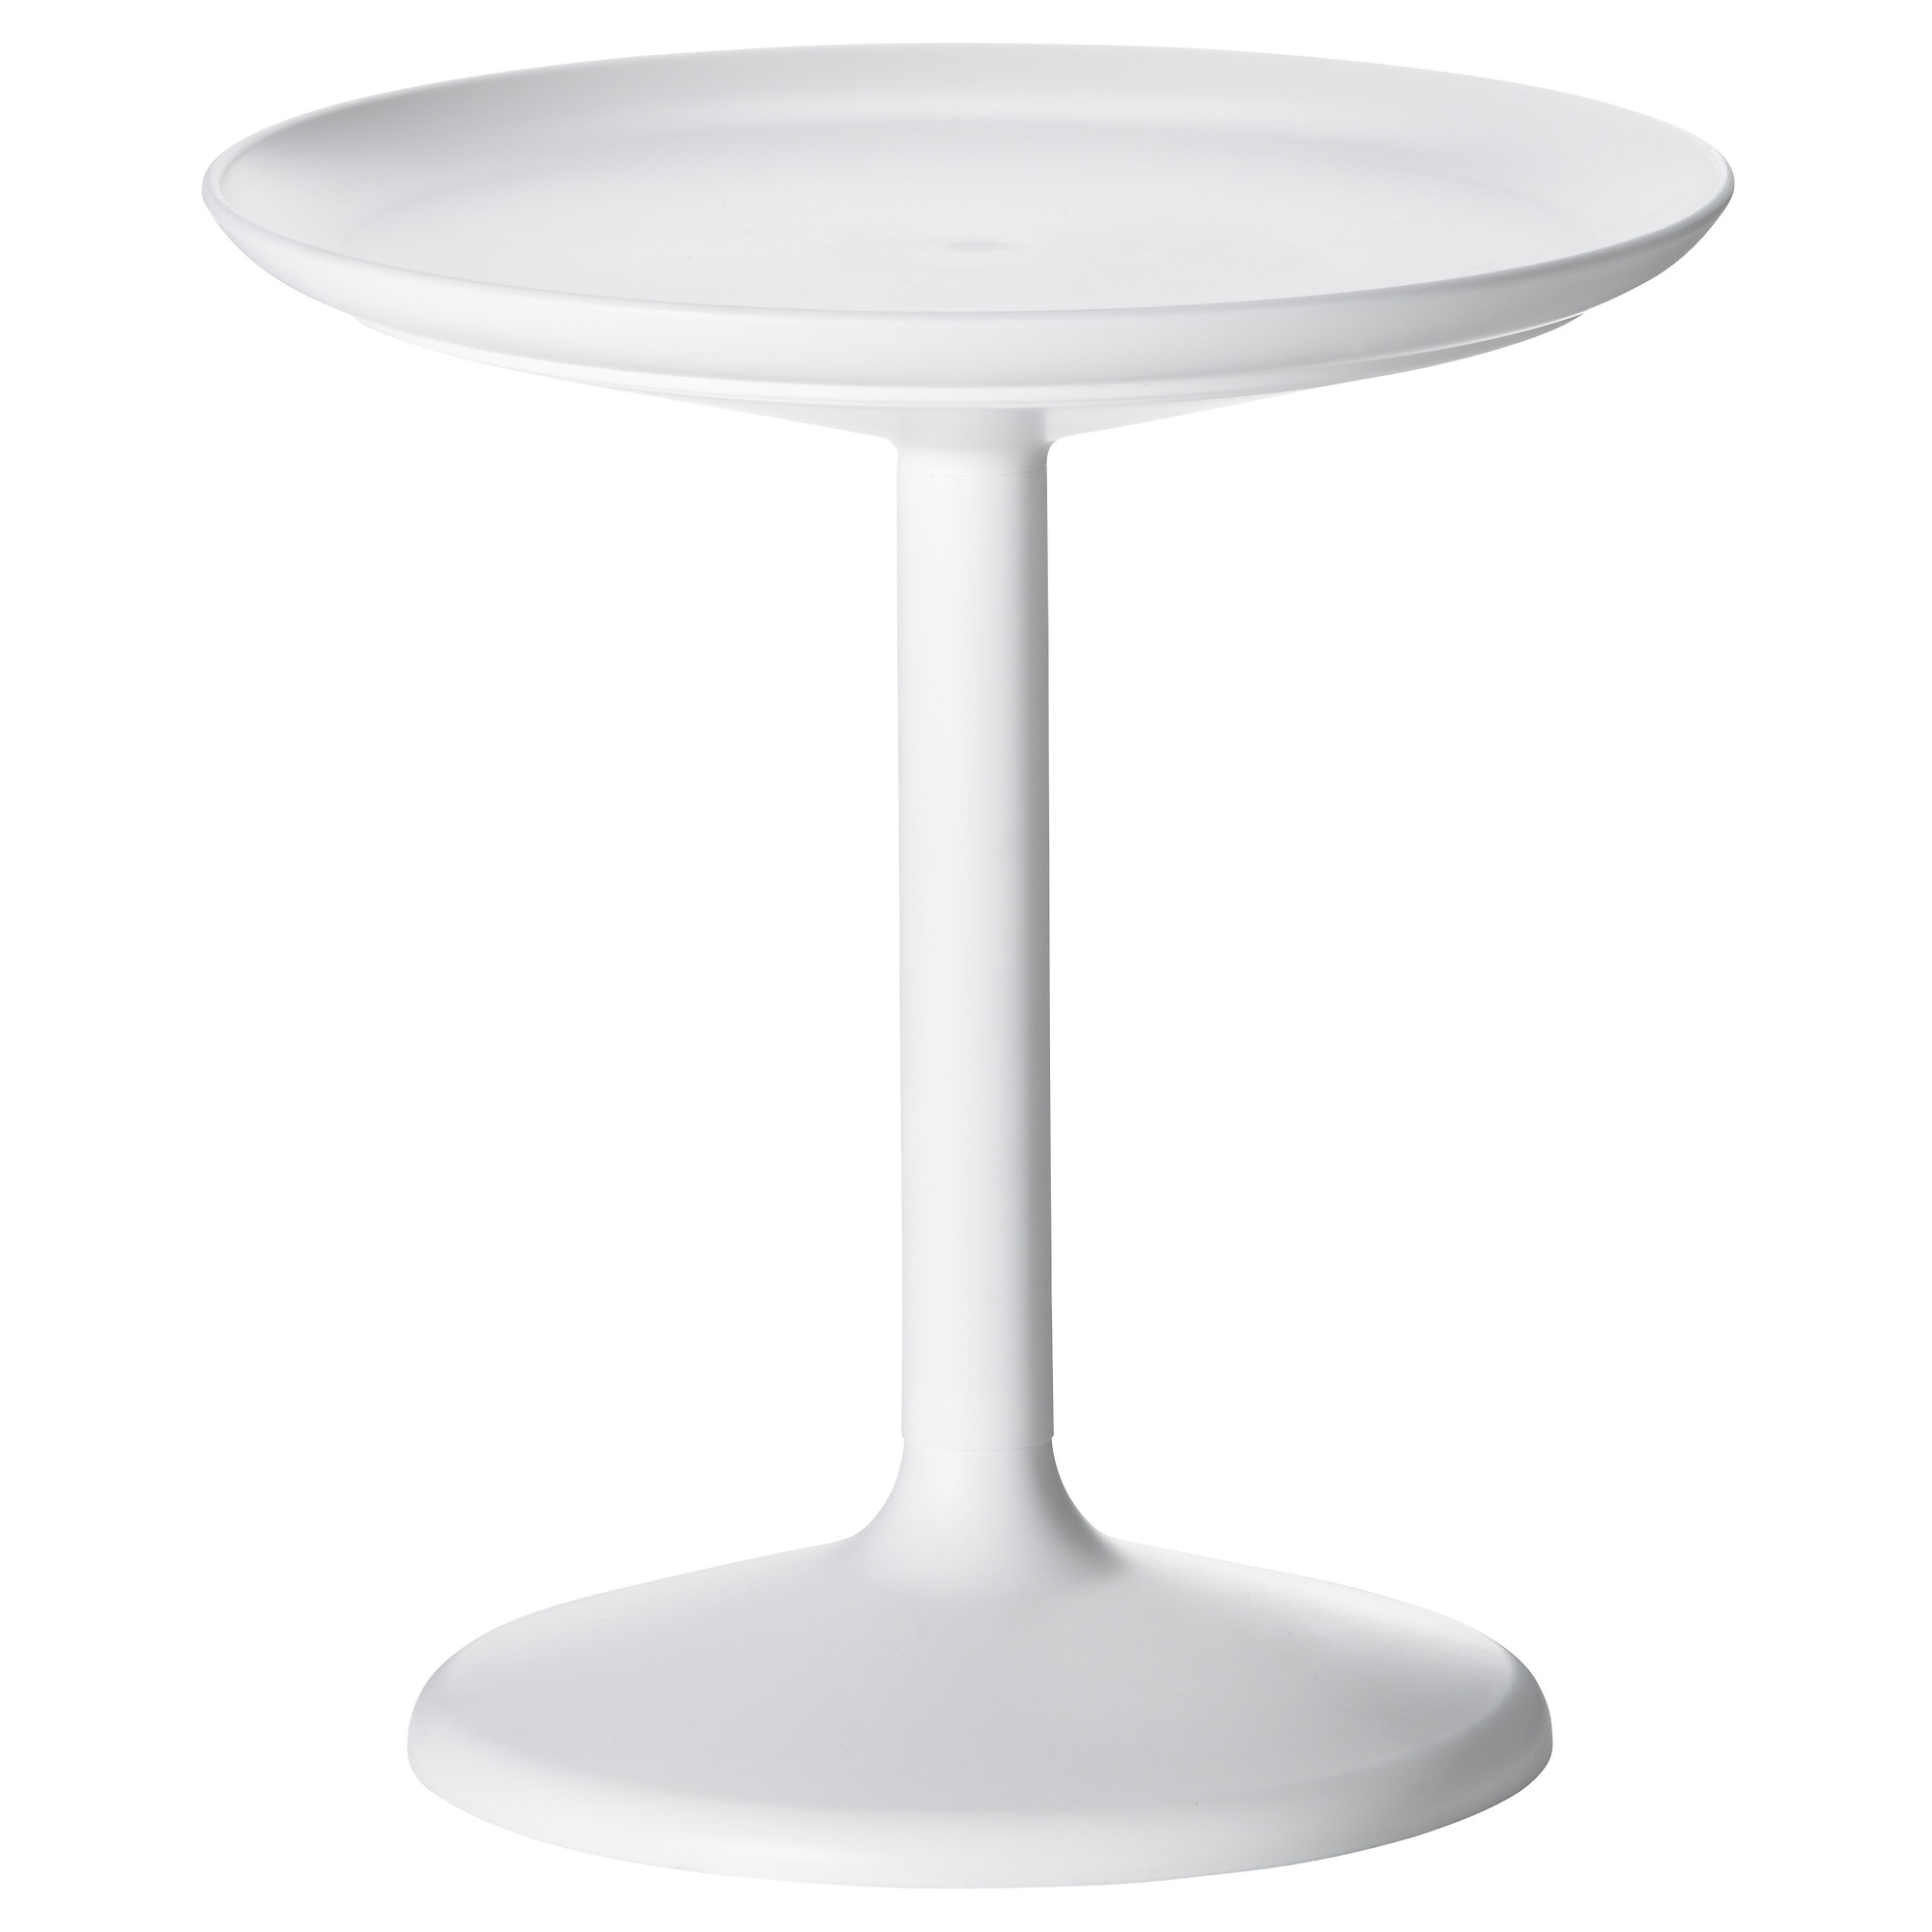 white outdoor side table small plastic patio resin tables metal ana accent nate berkus target west elm tripod lamp round wood coffee turquoise sofa antique drop leaf pedestal